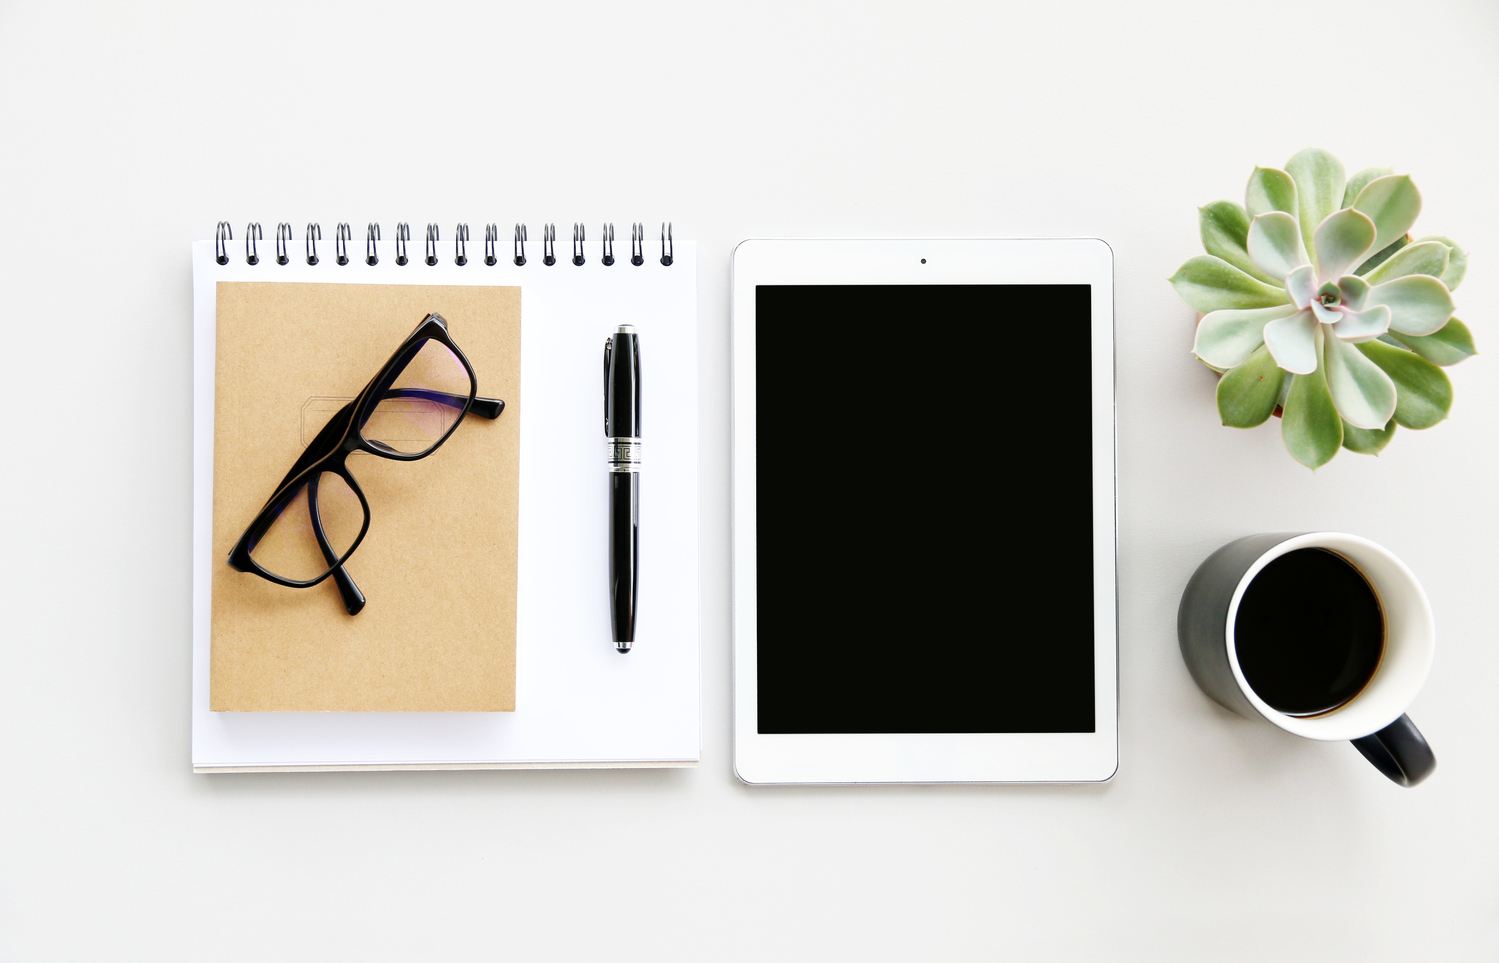 Ipad and notepad on desk with plant